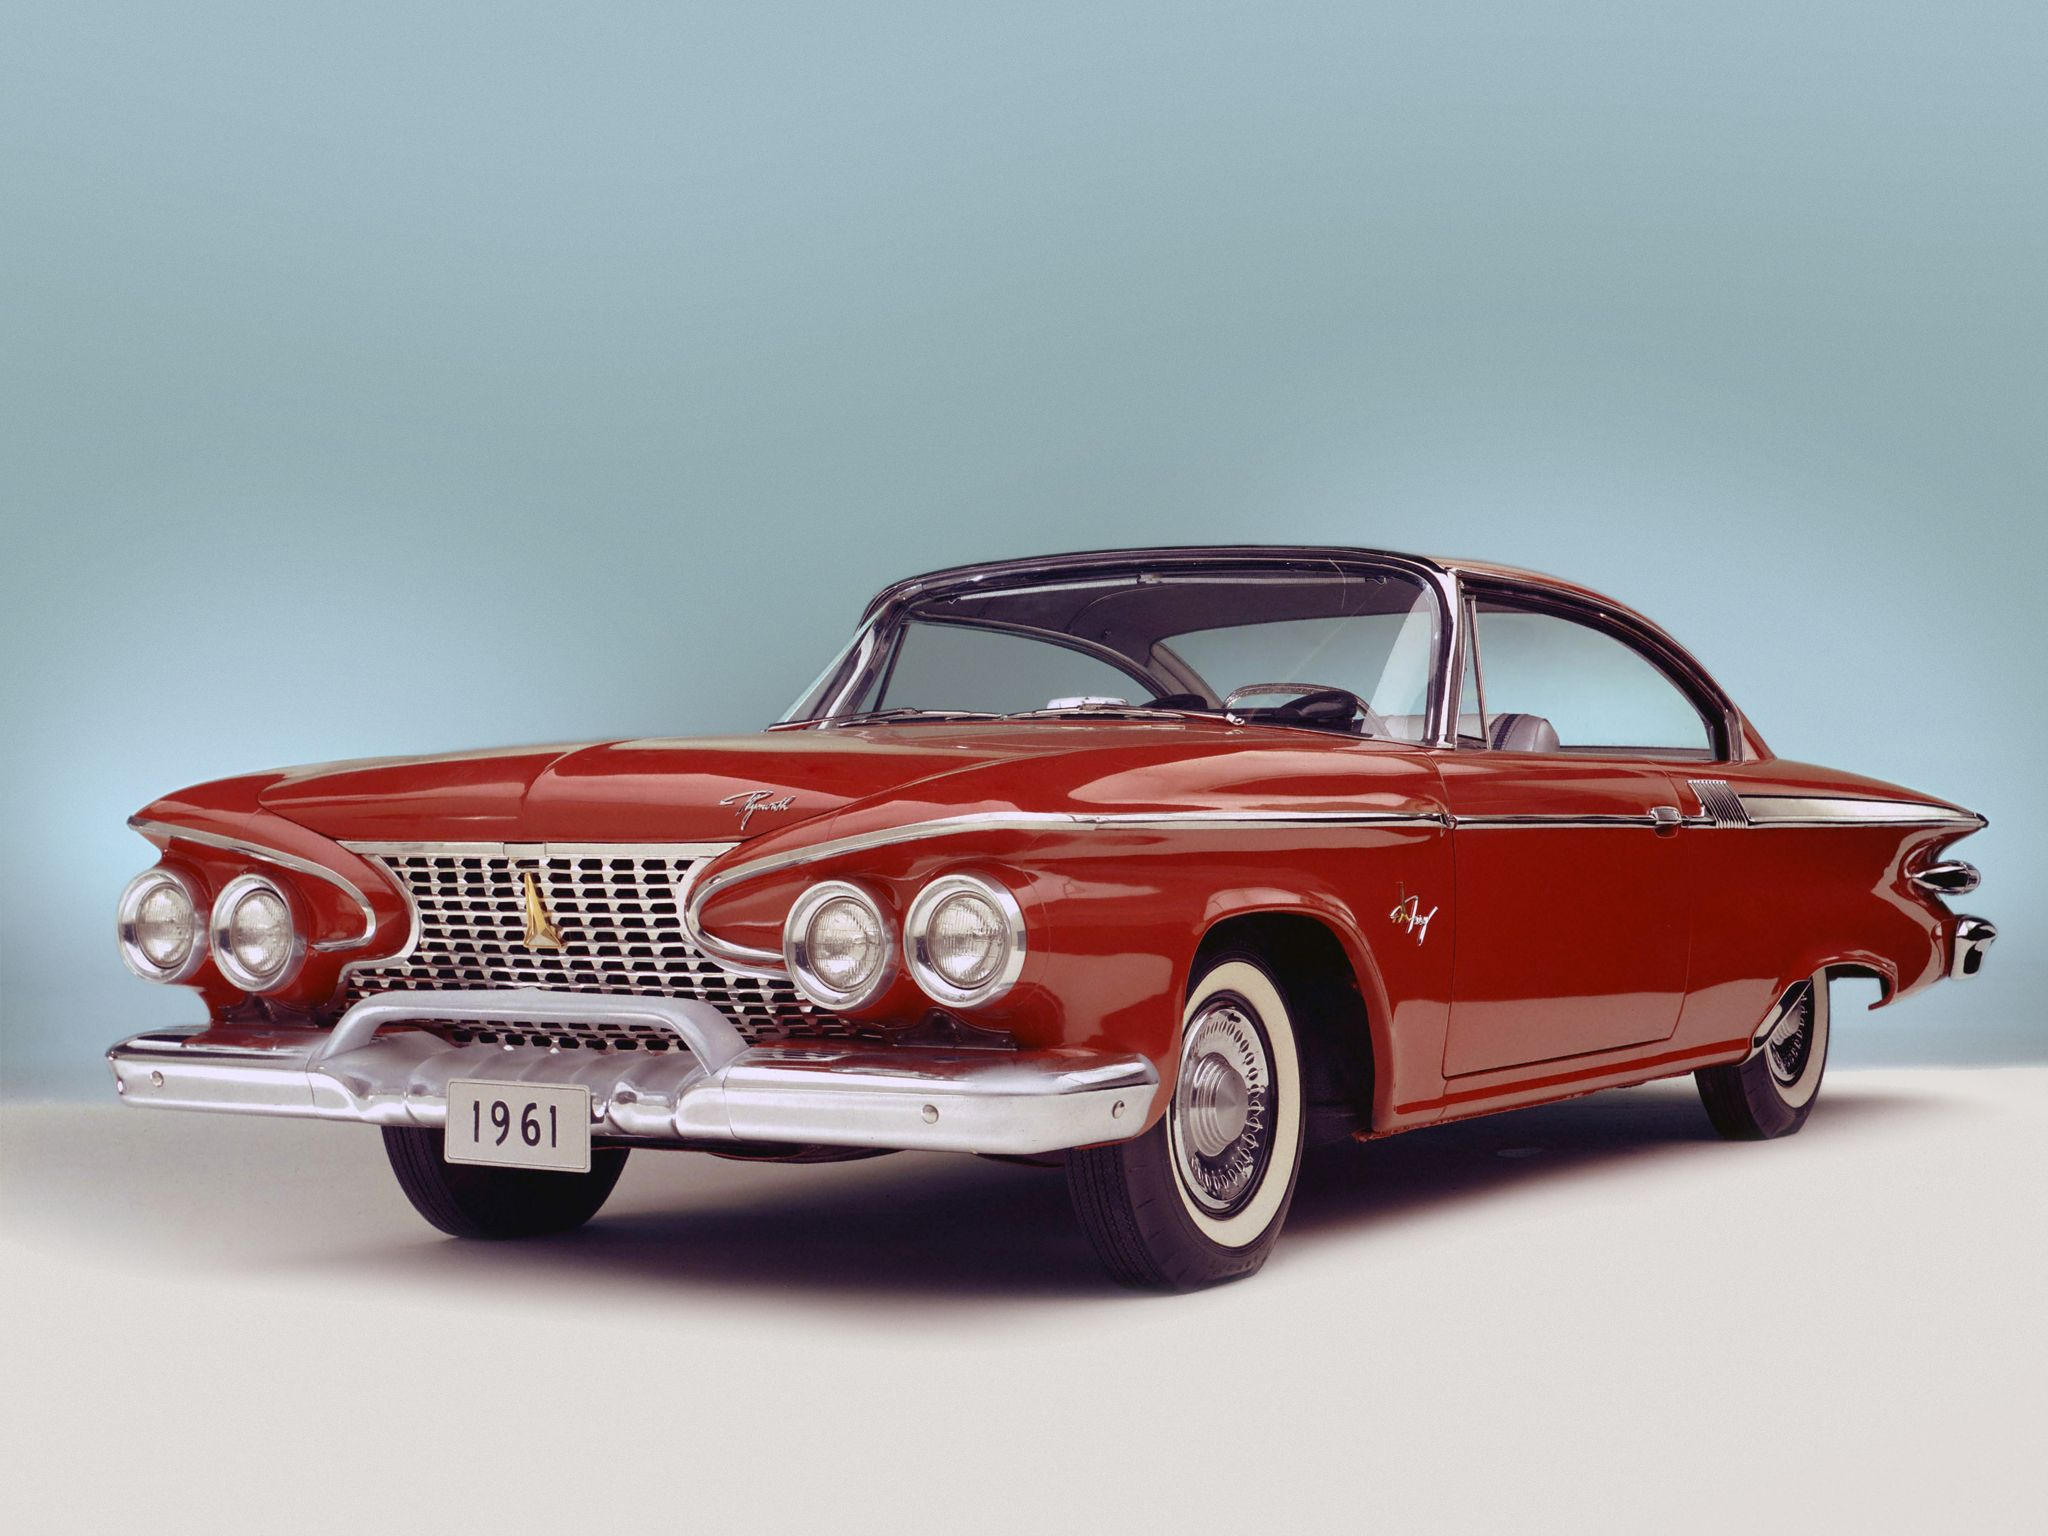 1961 plymouth fury classic cars pinterest plymouth fury plymouth and convertible